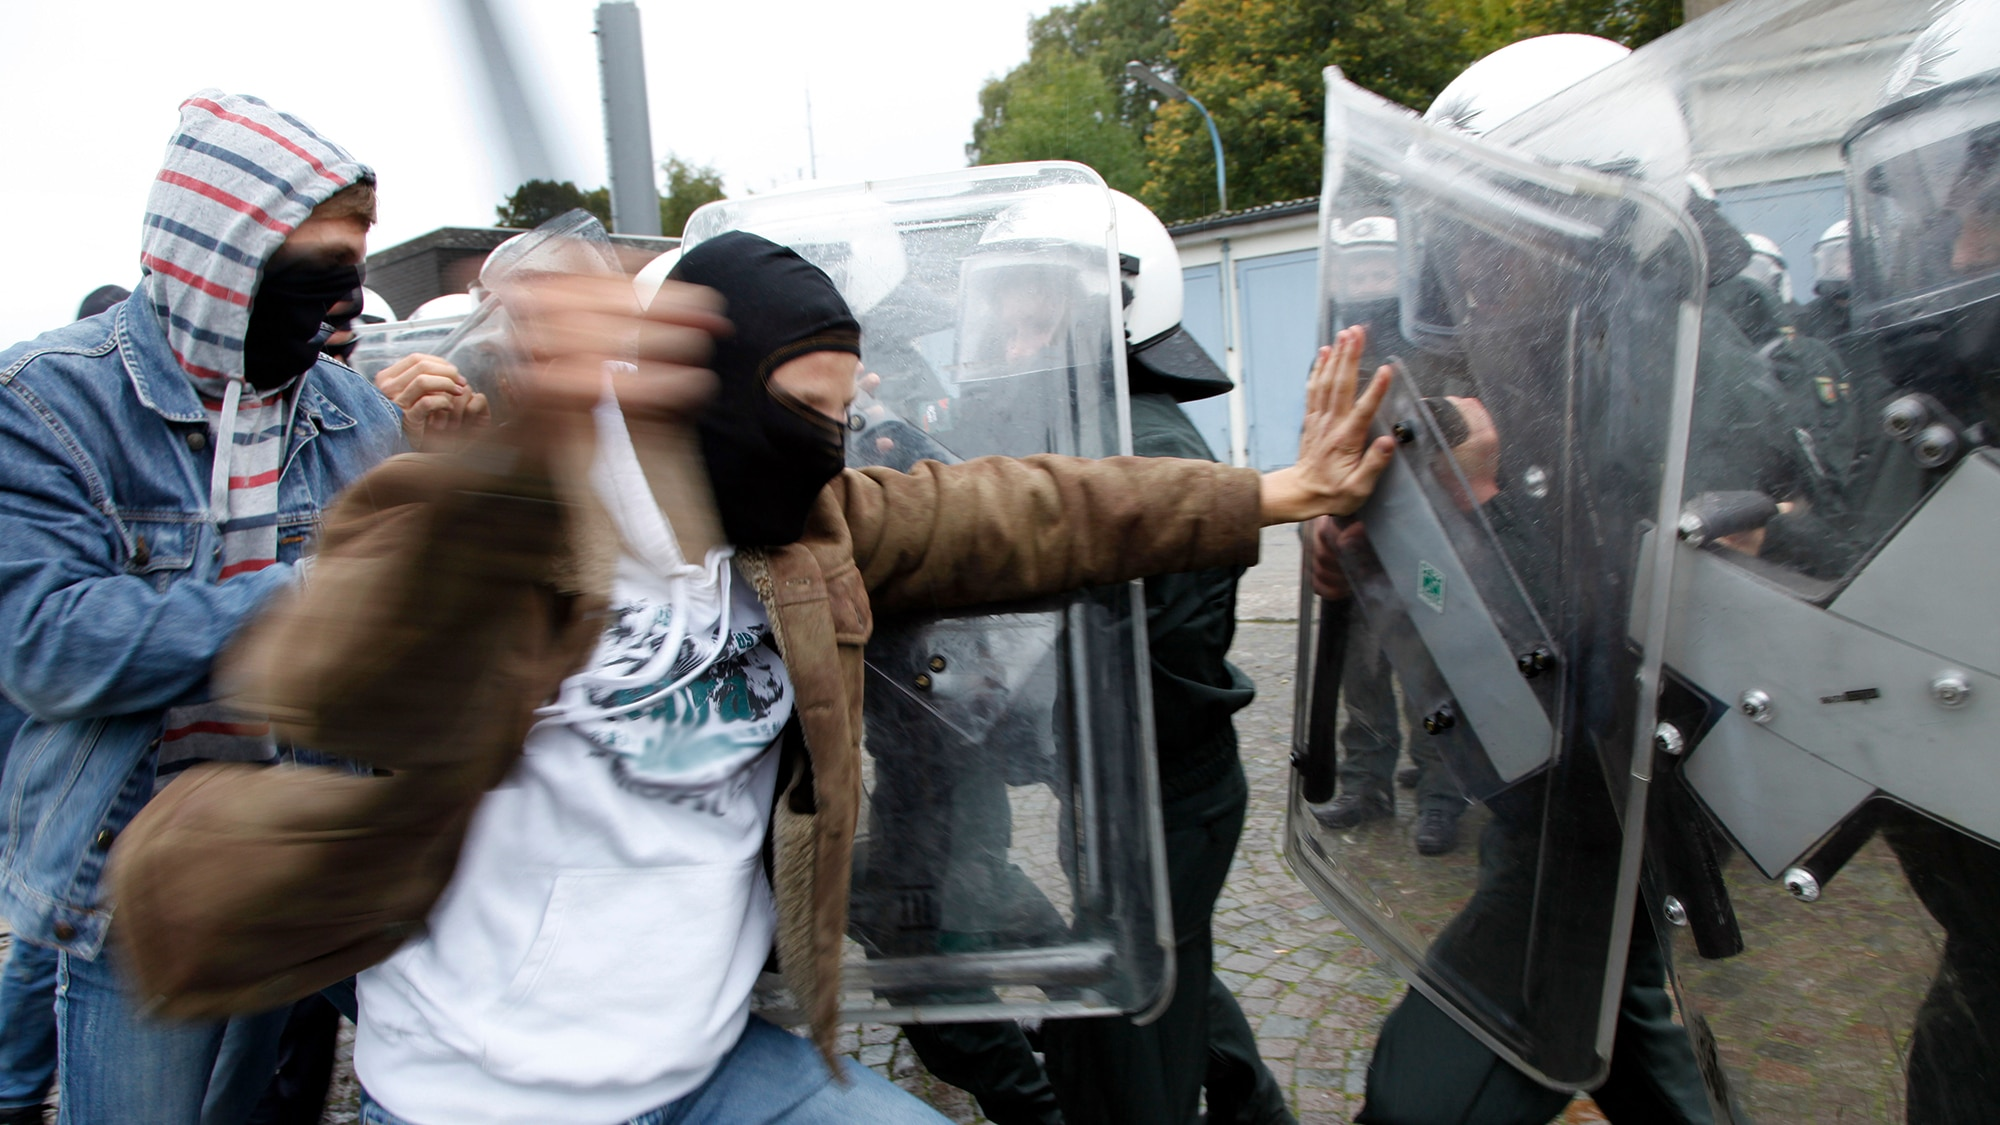 BKCTMX Violence against police officers. Exercise of an anti riot police unit. Violent demonstrators attacks police forces..